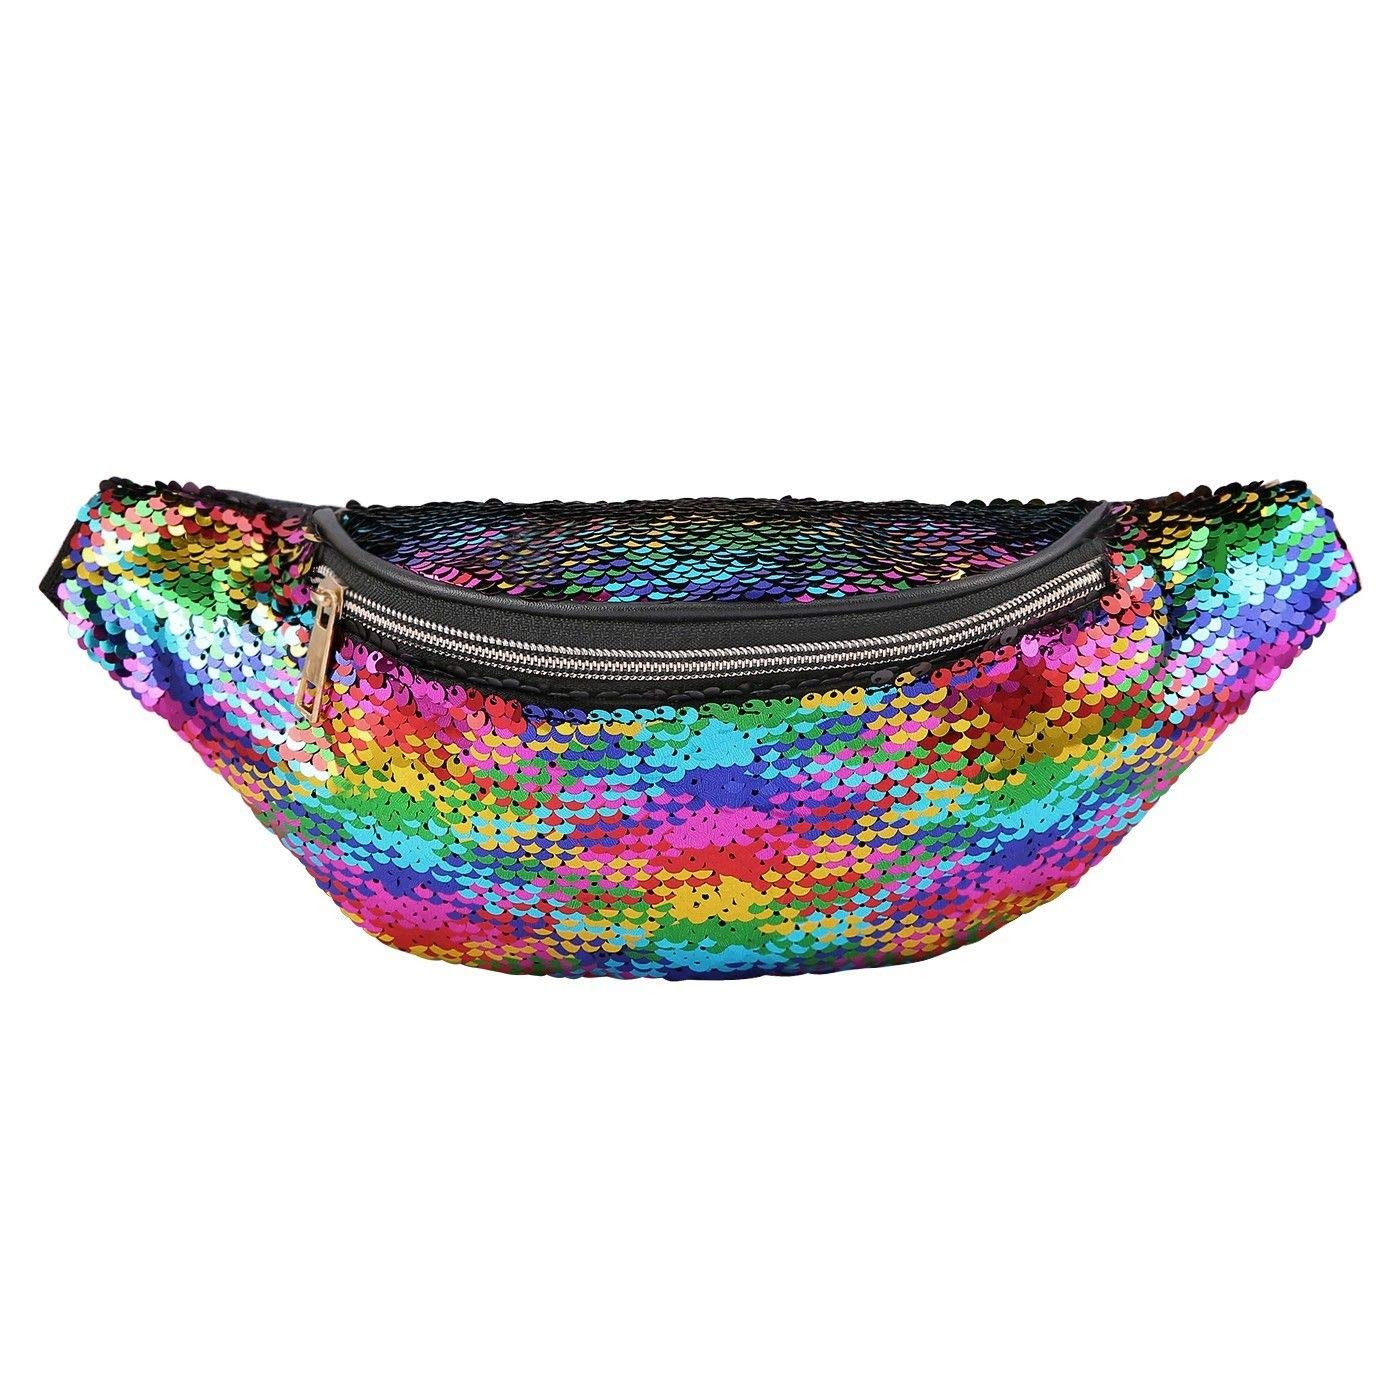 Sequin Fanny Pack Festival Waist Pack Bum Bag Outdoor Travel colorful